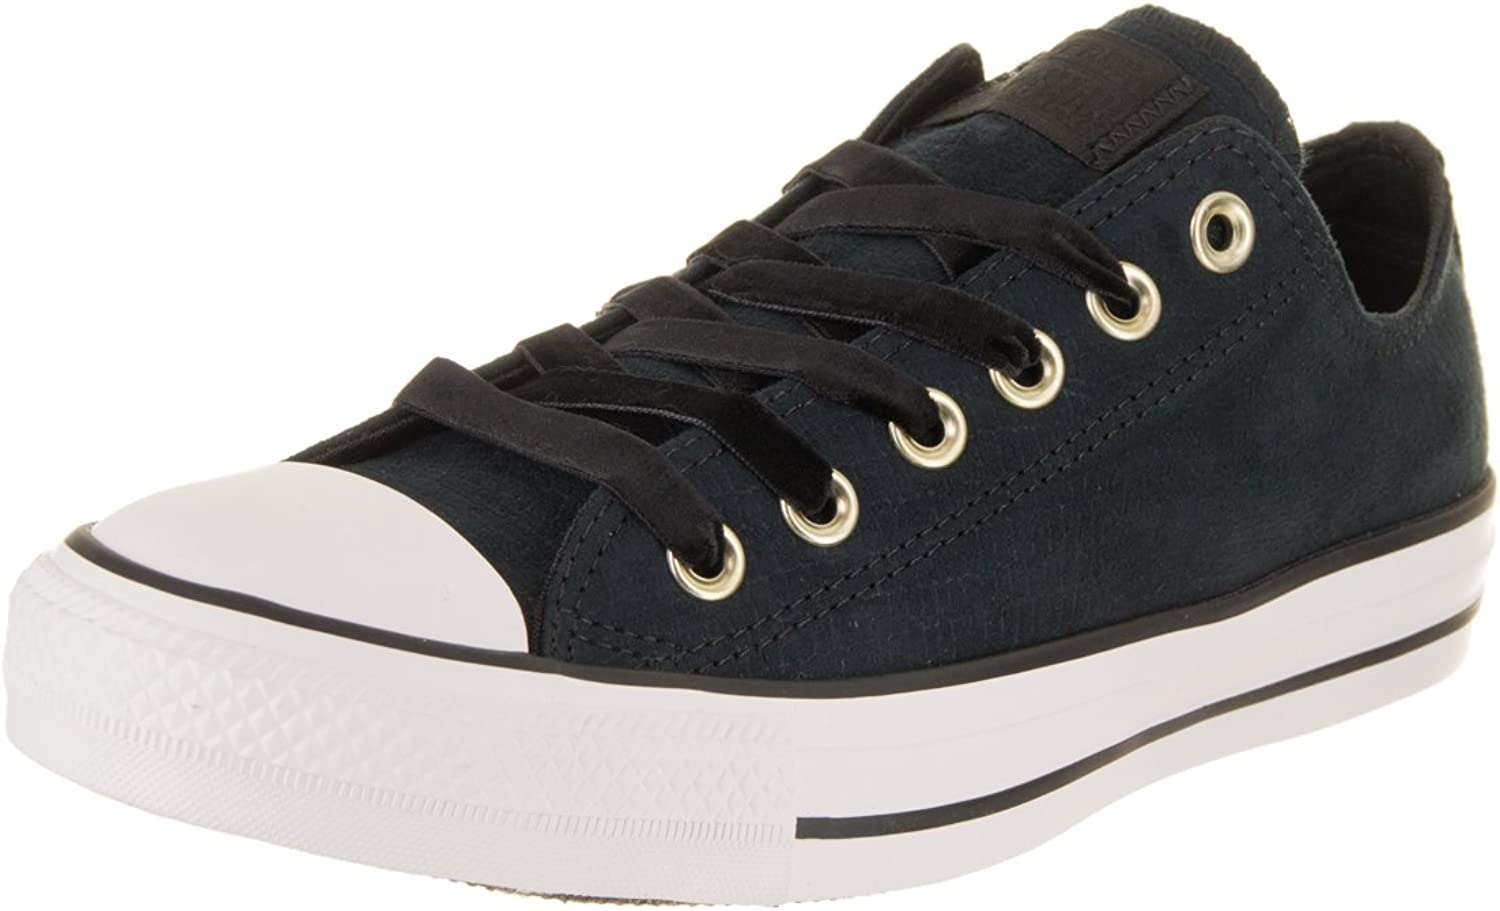 Converse Women's Chuck Taylor All Star Ox Black Black White Casual shoes 7.5 Women US